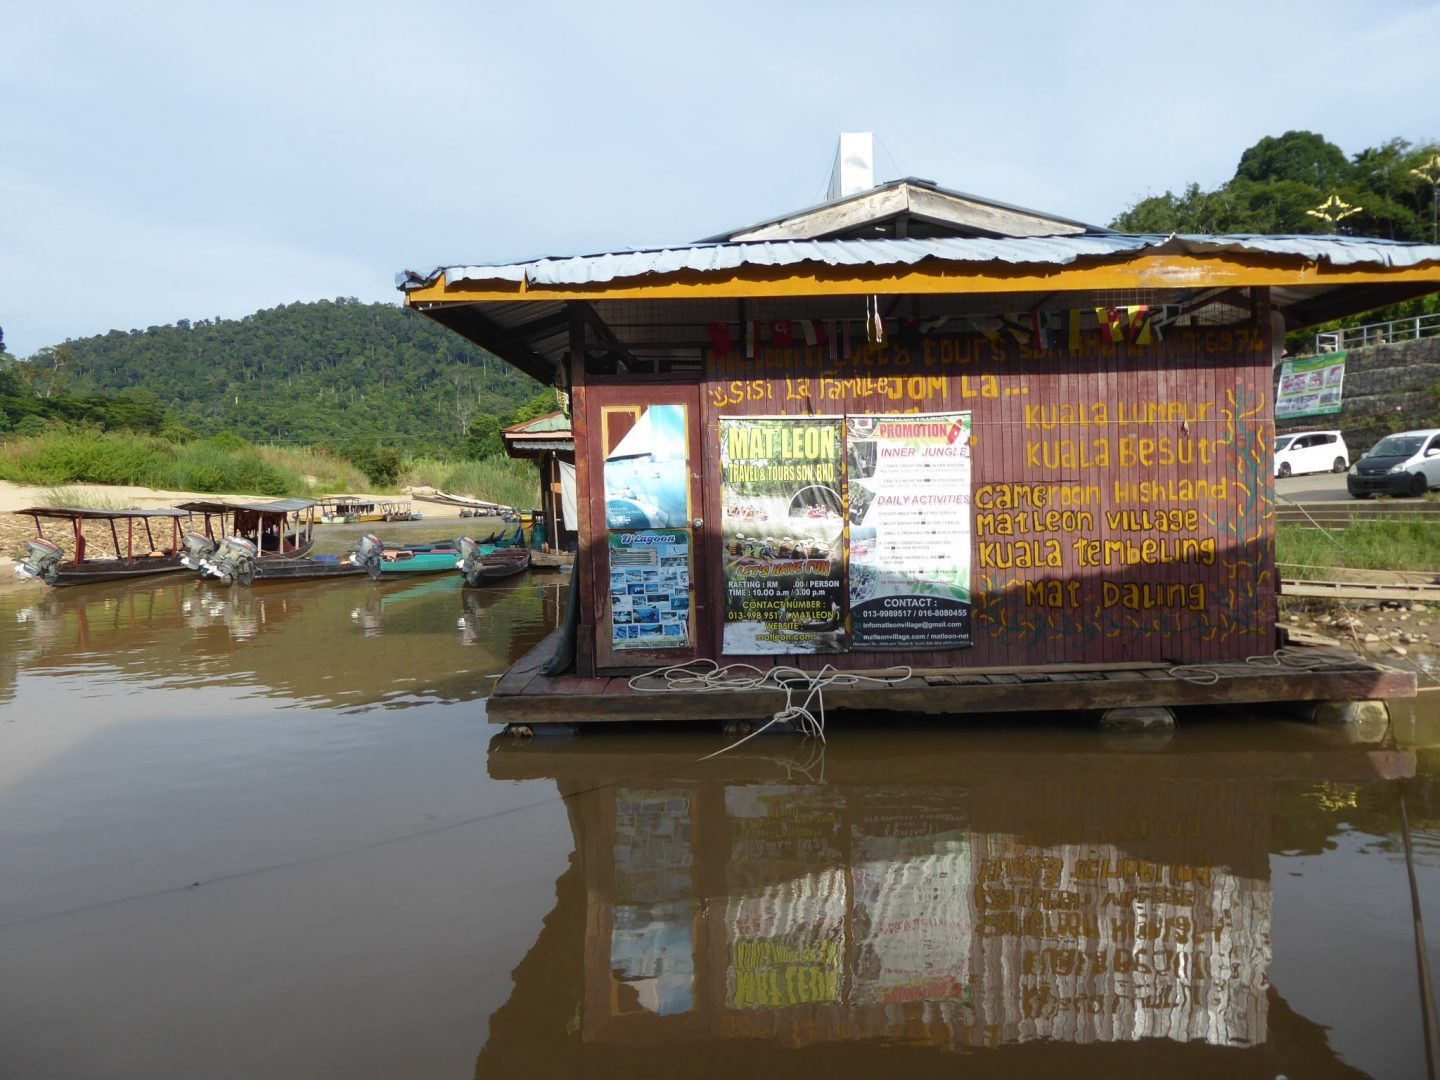 Graffiti style writing on sid eof building floating on river. Offer travel destinations.